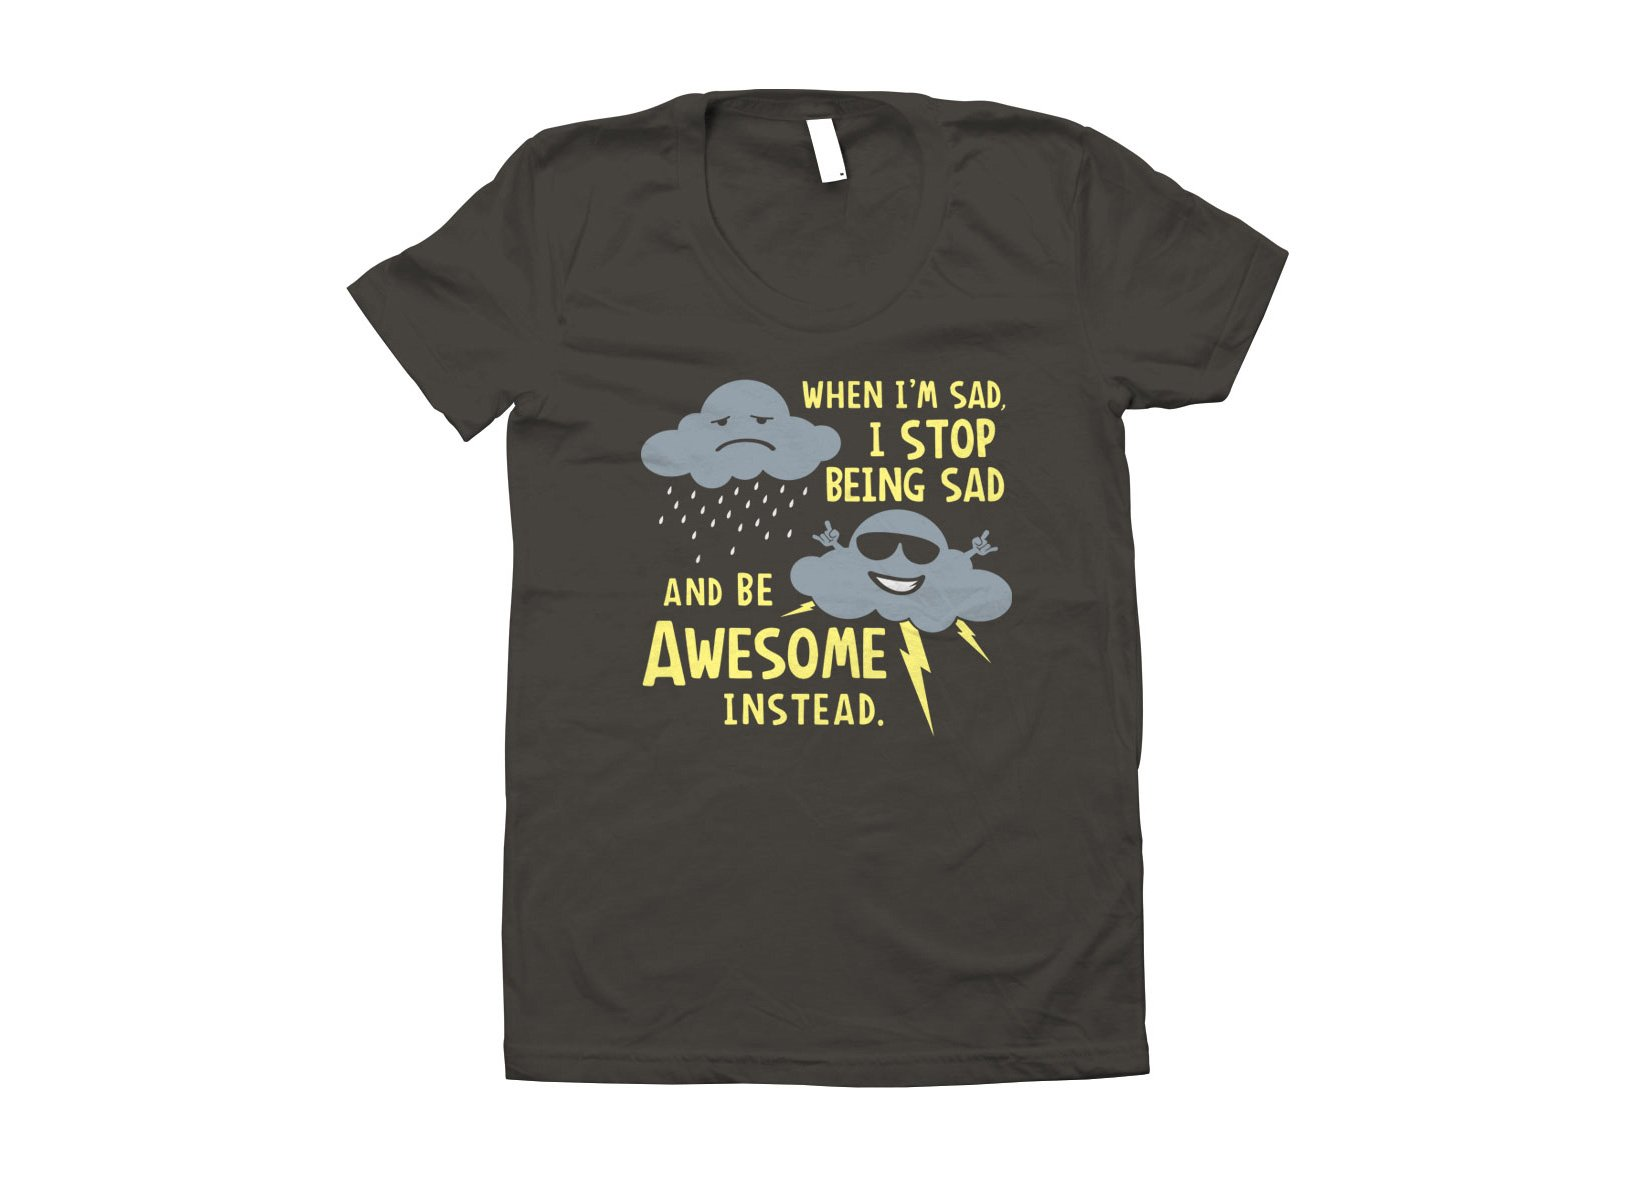 When I'm Sad, I Stop Being Sad And Be Awesome Instead on Juniors T-Shirt